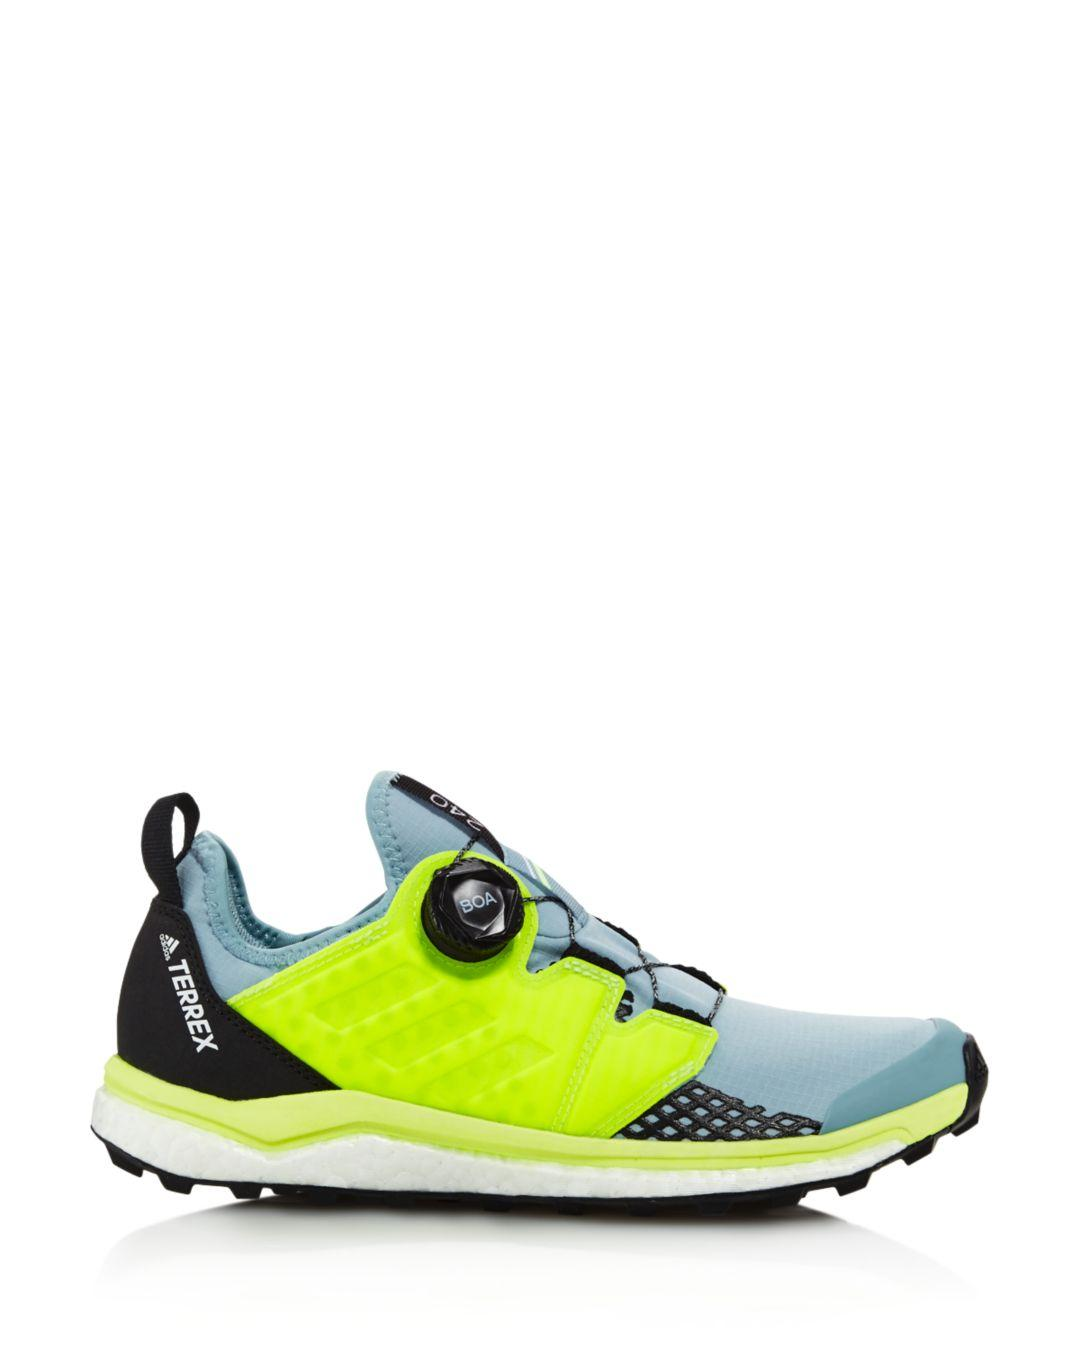 30f8562ff69dfb adidas Women s Outdoor Terrex Agravic Boa Athletic Sneakers - Lyst